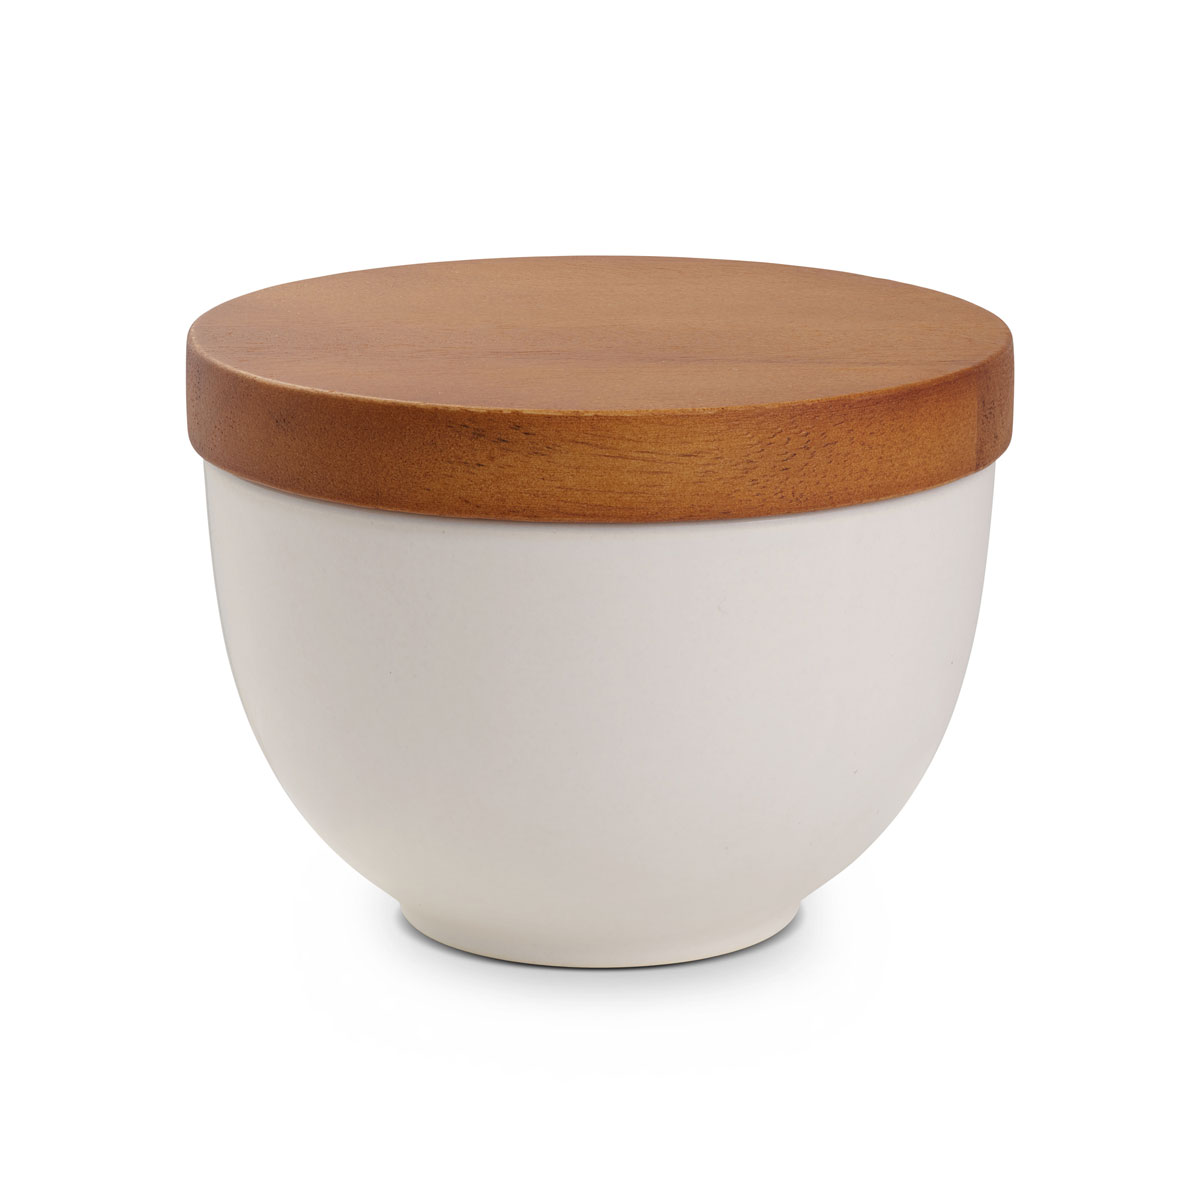 Nambe Prism Candle Bowl with Lid Starry White